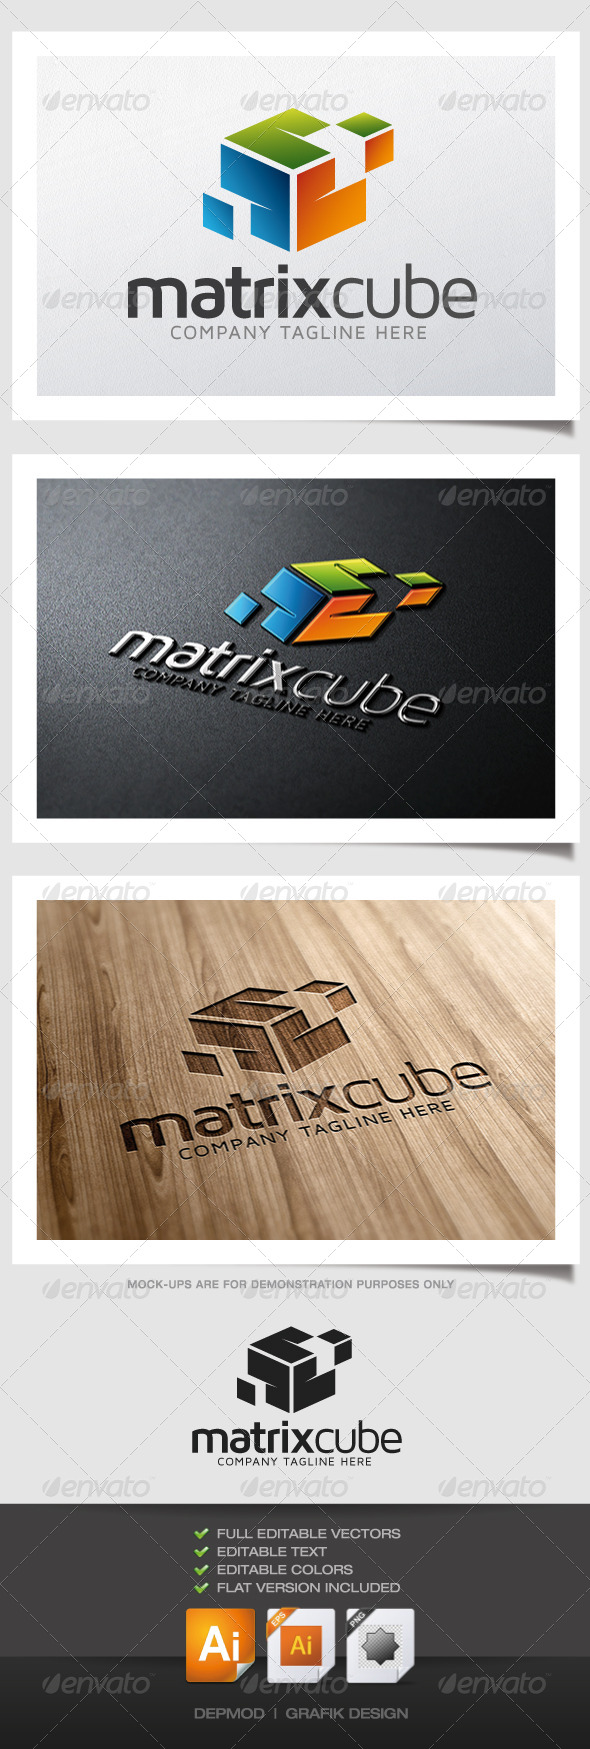 Matrix Cube Logo - Abstract Logo Templates